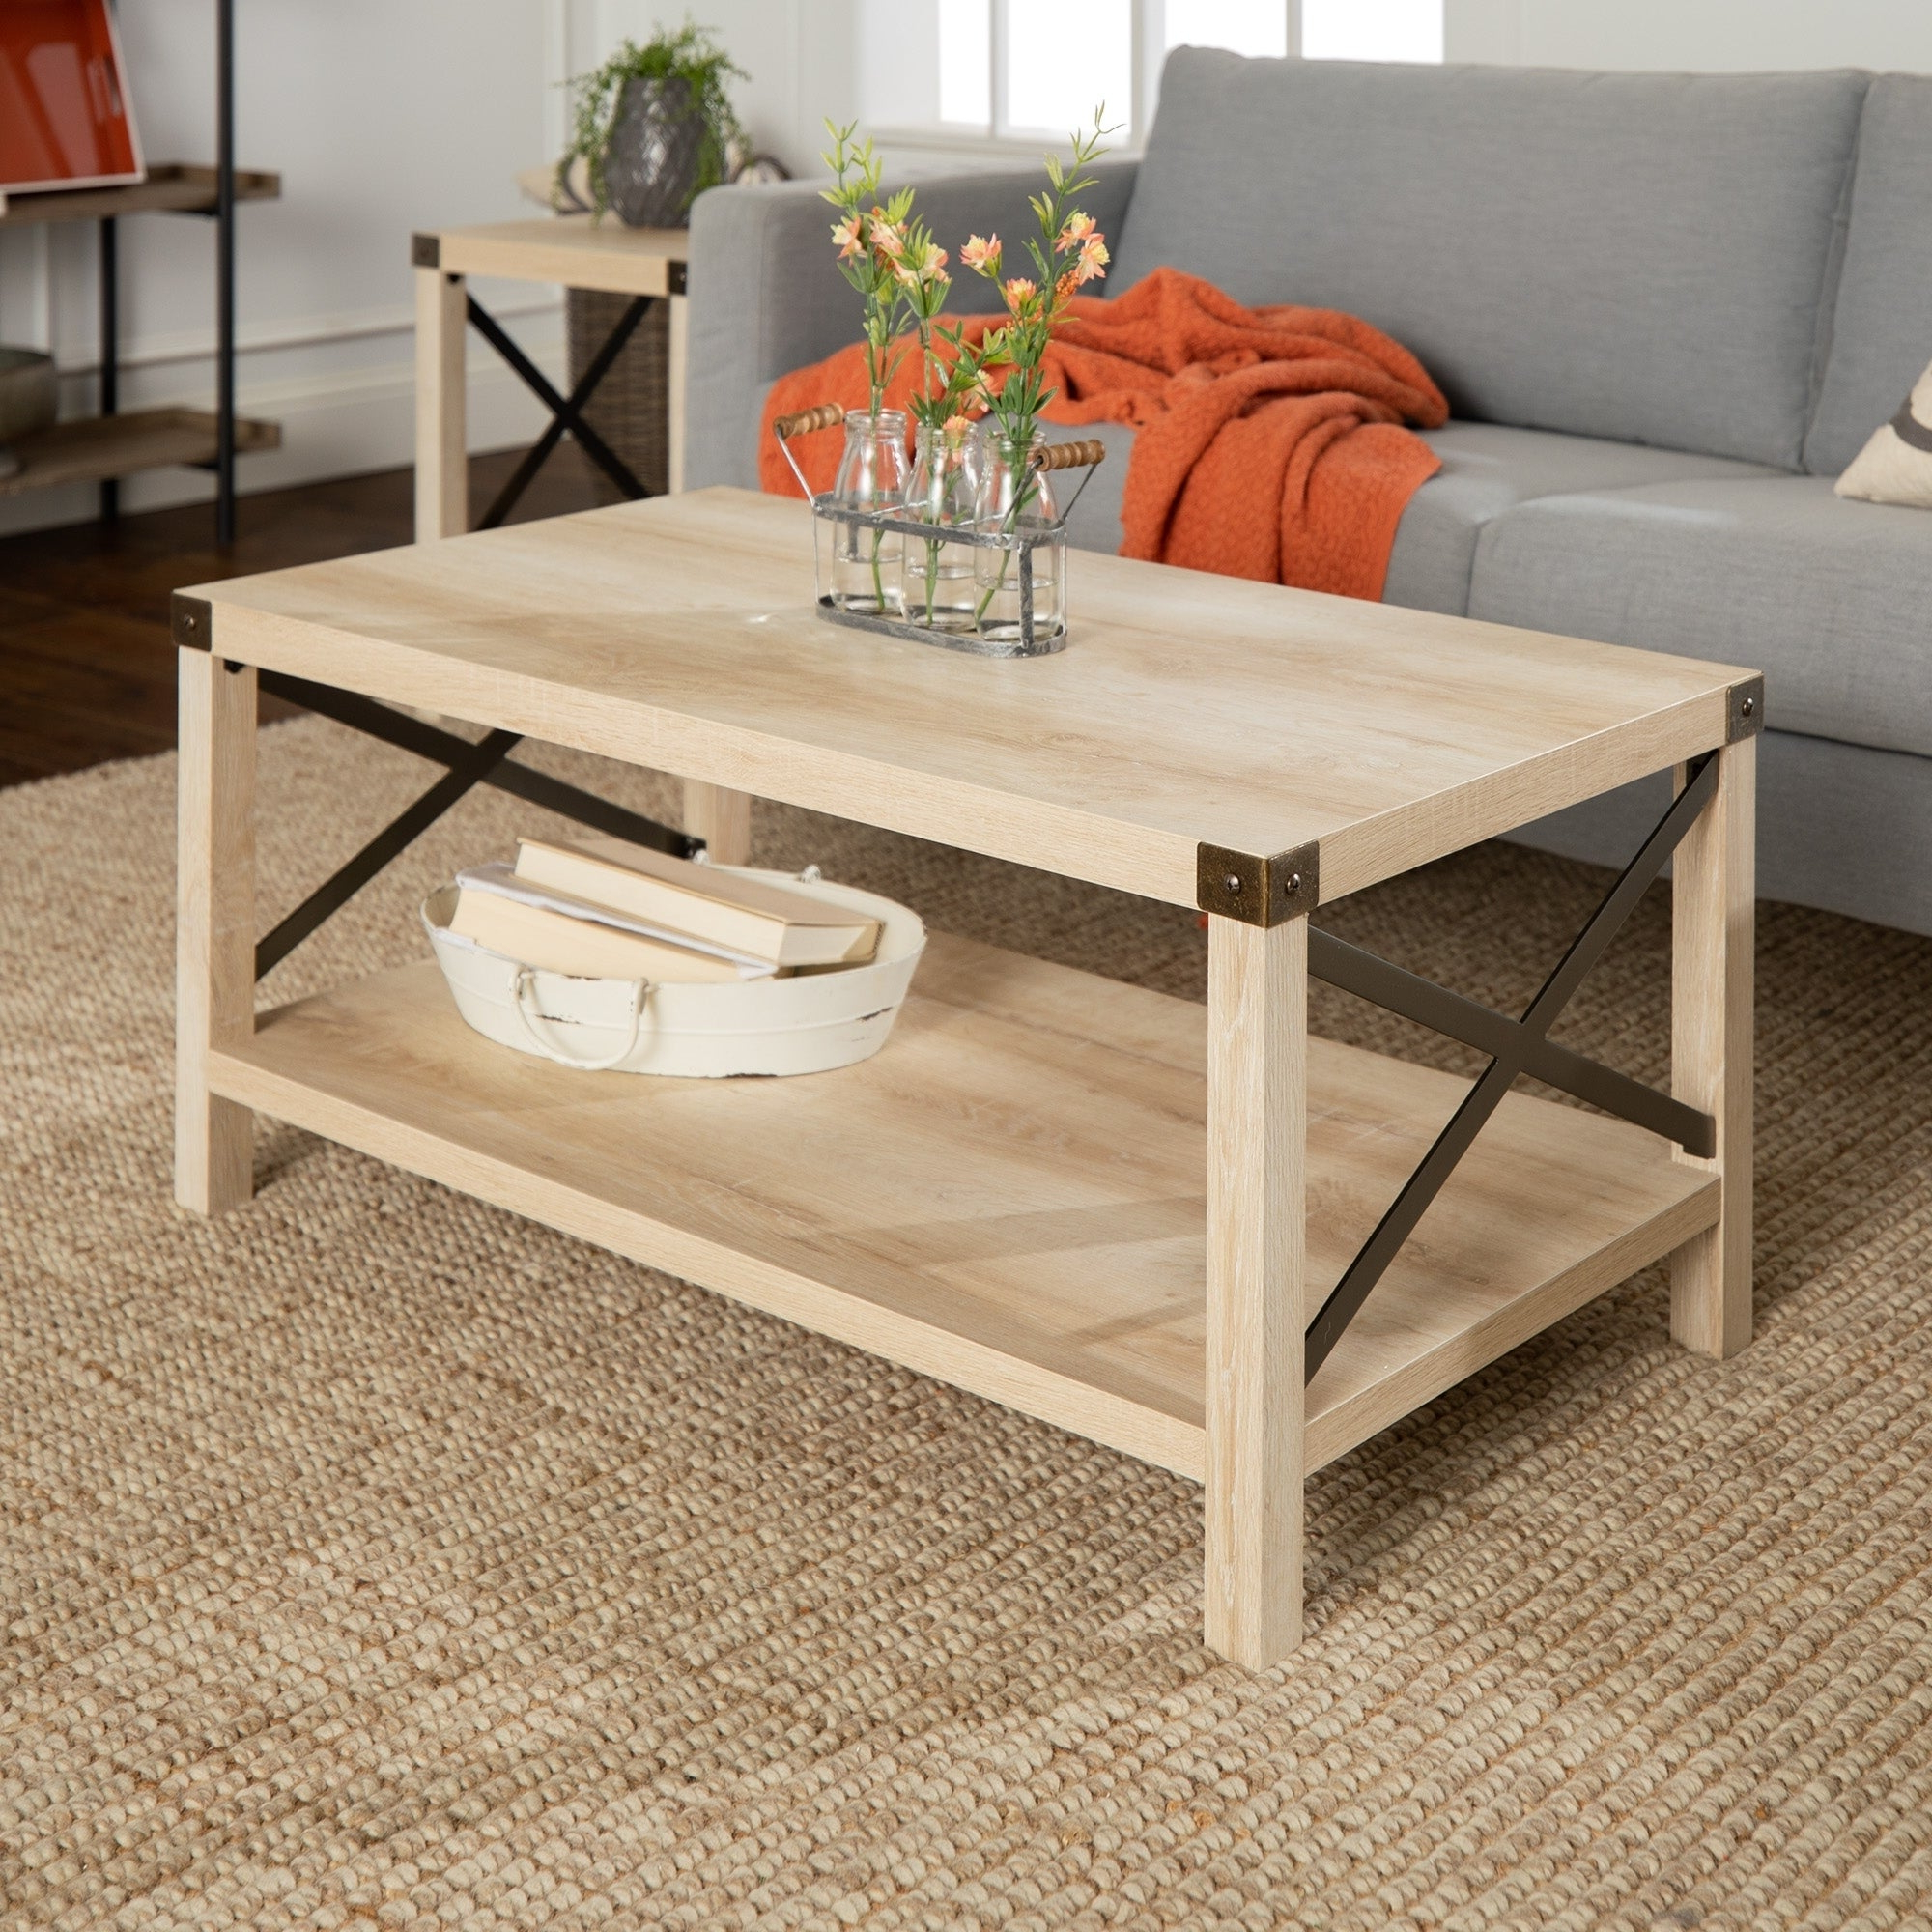 The Gray Barn Kujawa Metal X Coffee Table – 40 X 22 X 18h Within Preferred The Gray Barn Kujawa Metal X Coffee Tables – 40 X 22 X 18h (View 3 of 20)